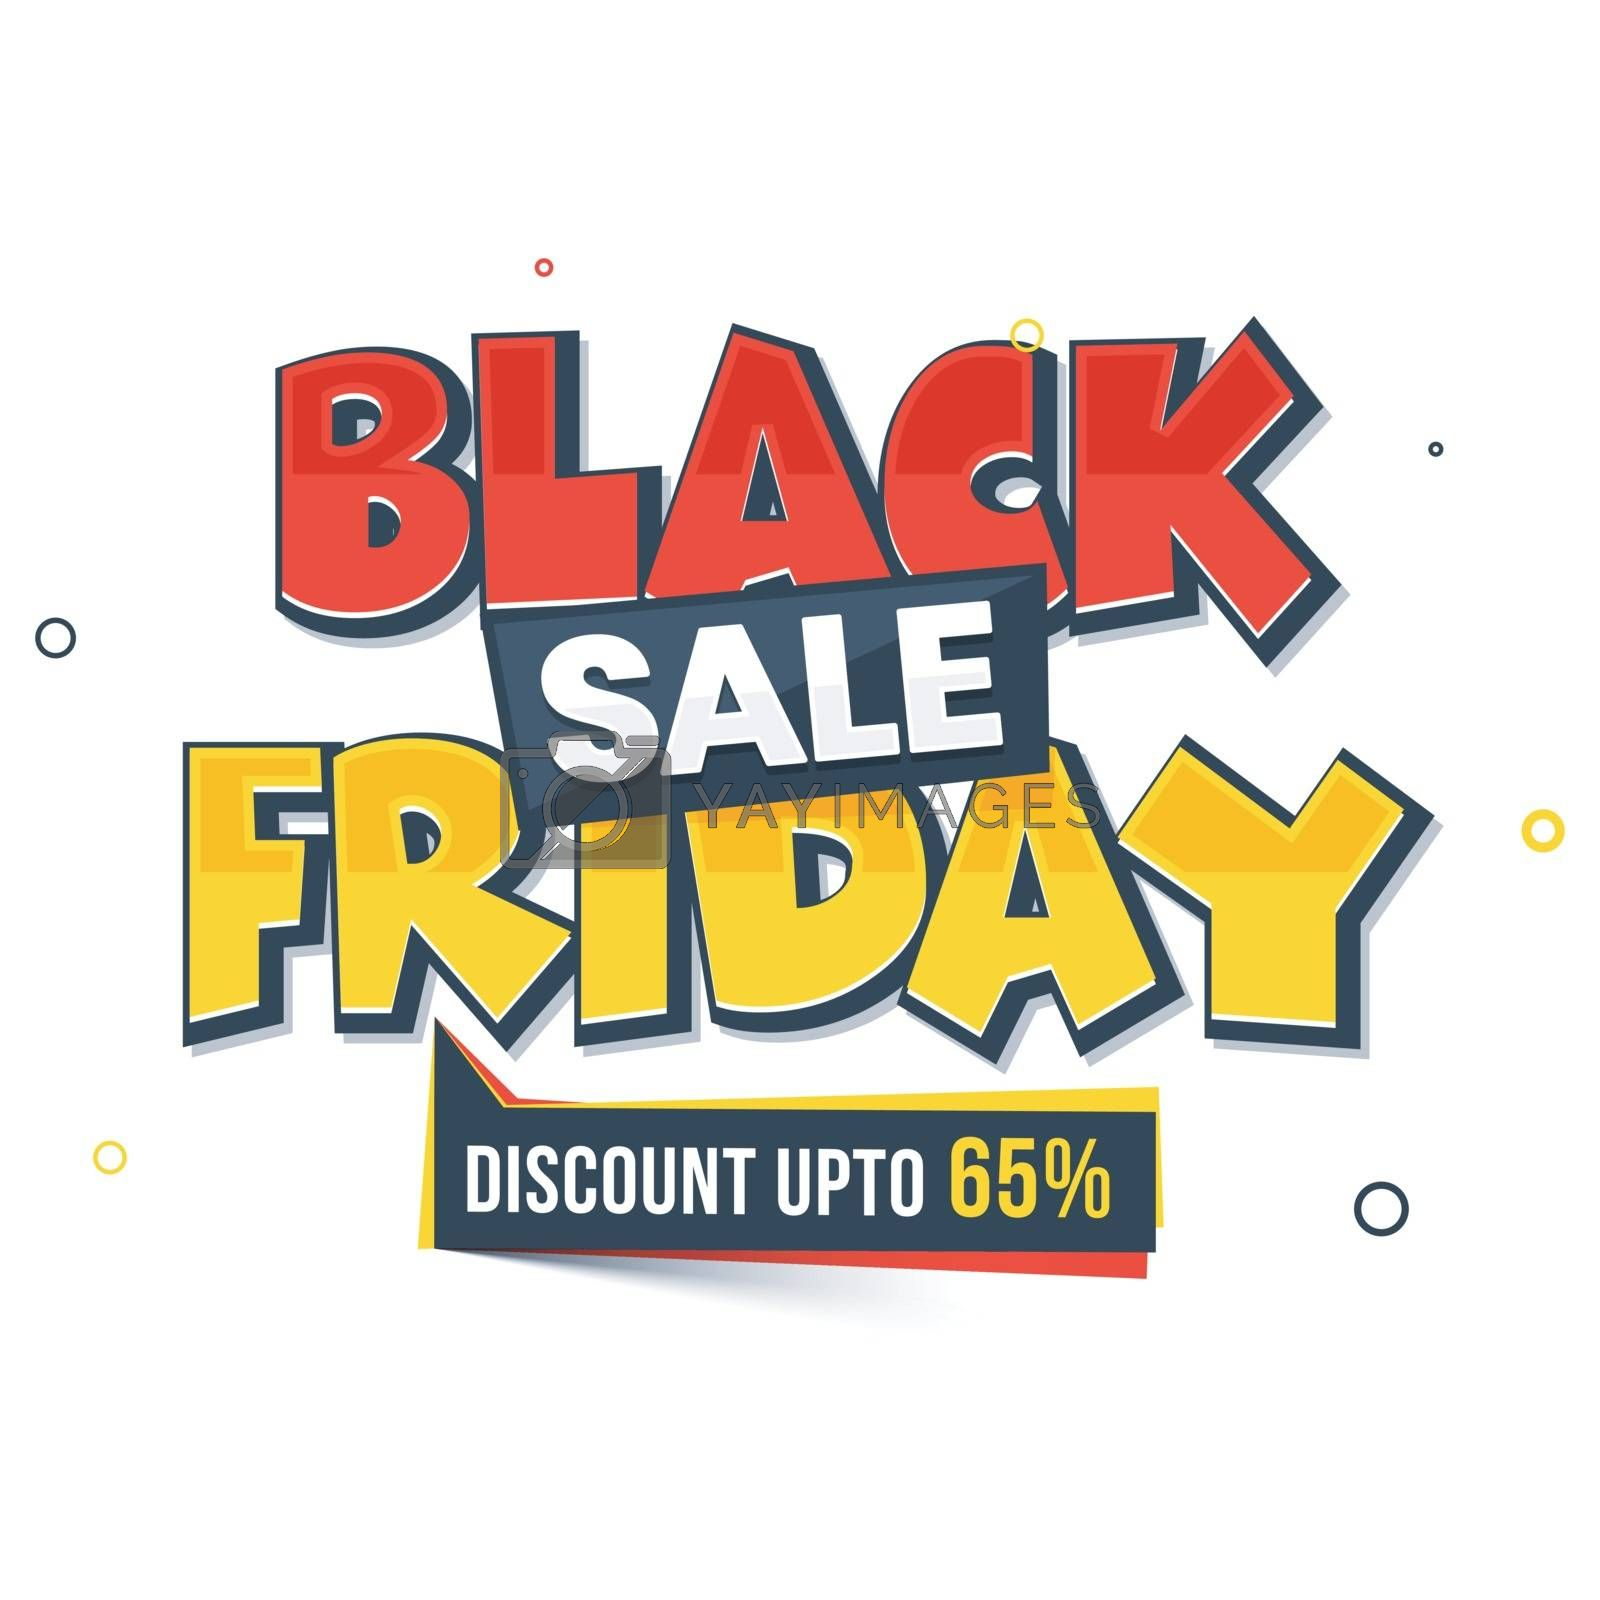 Black Friday Sale template or flyer design with 65% discount offer.